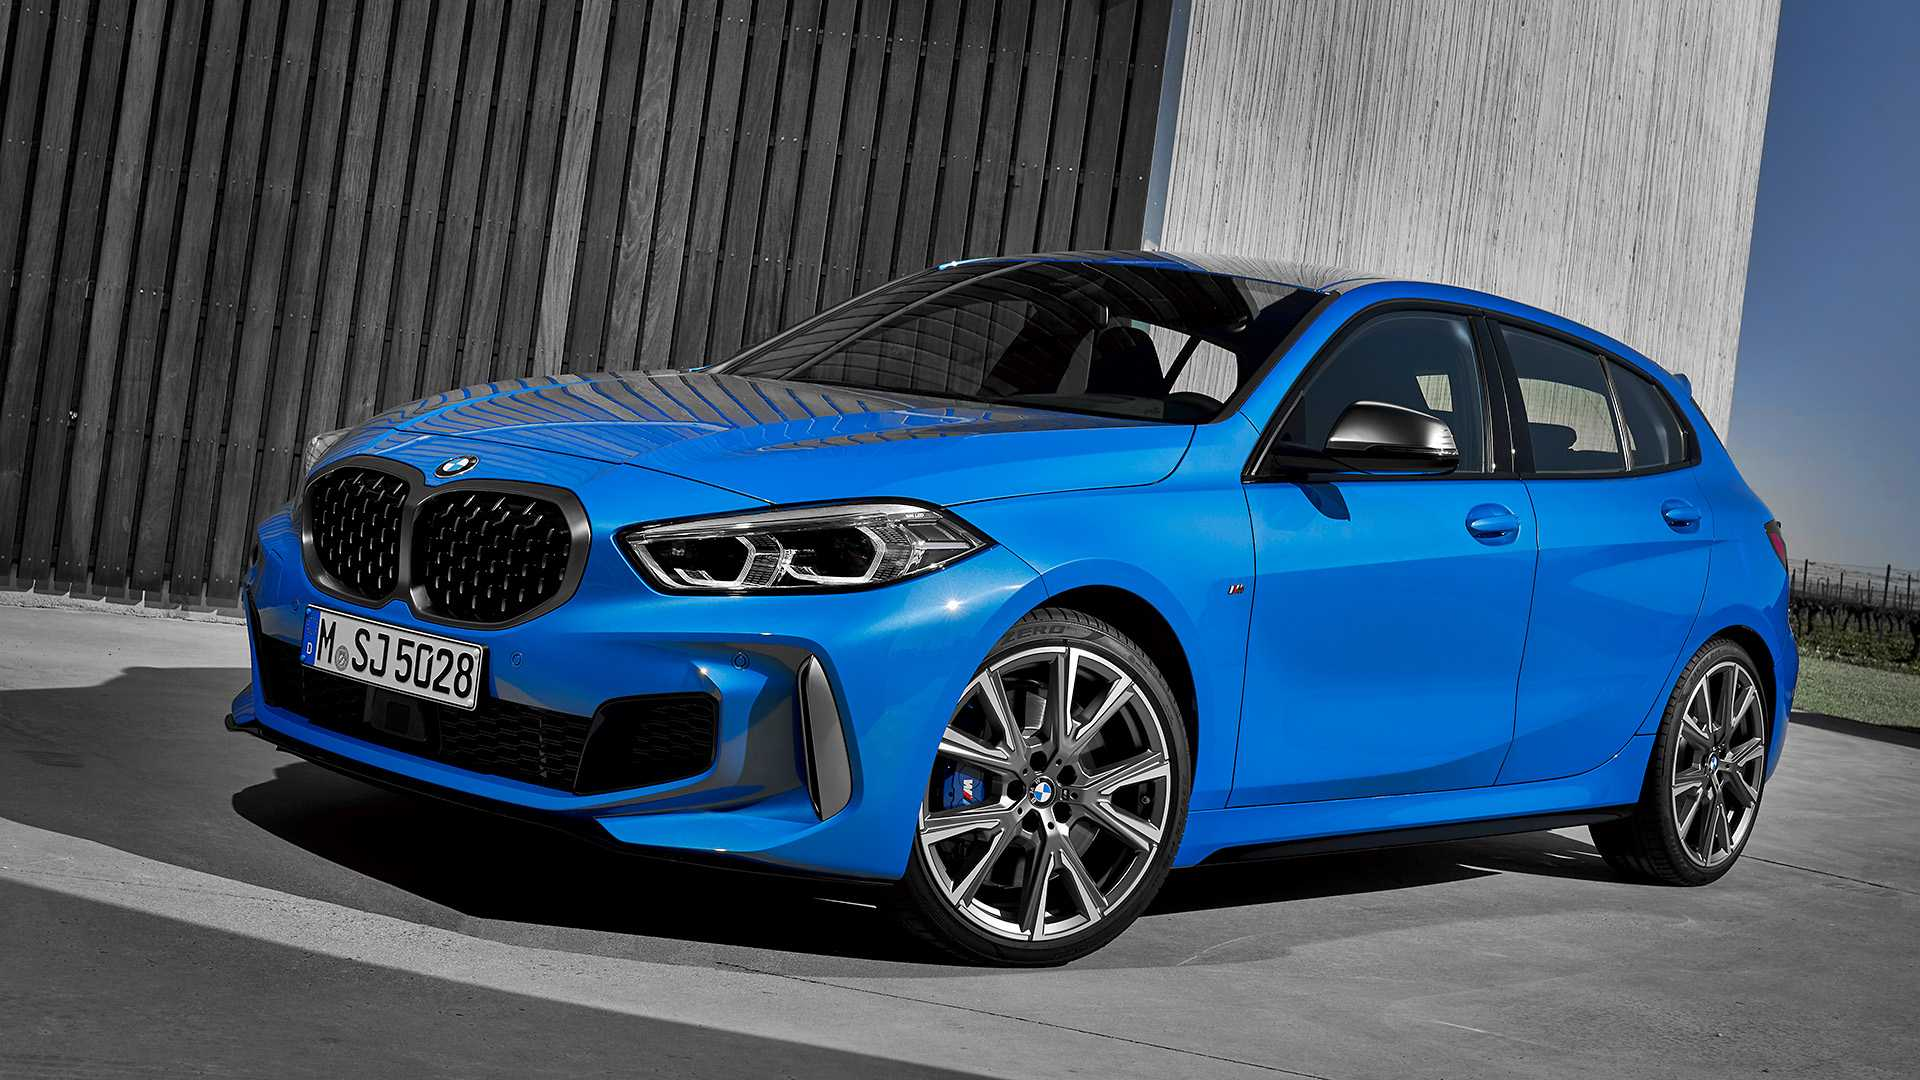 2020 BMW X2 M Specs, Price, Redesign, And Release Date >> 2020 Bmw 1 Series Officially Revealed With M135i Hot Hatch